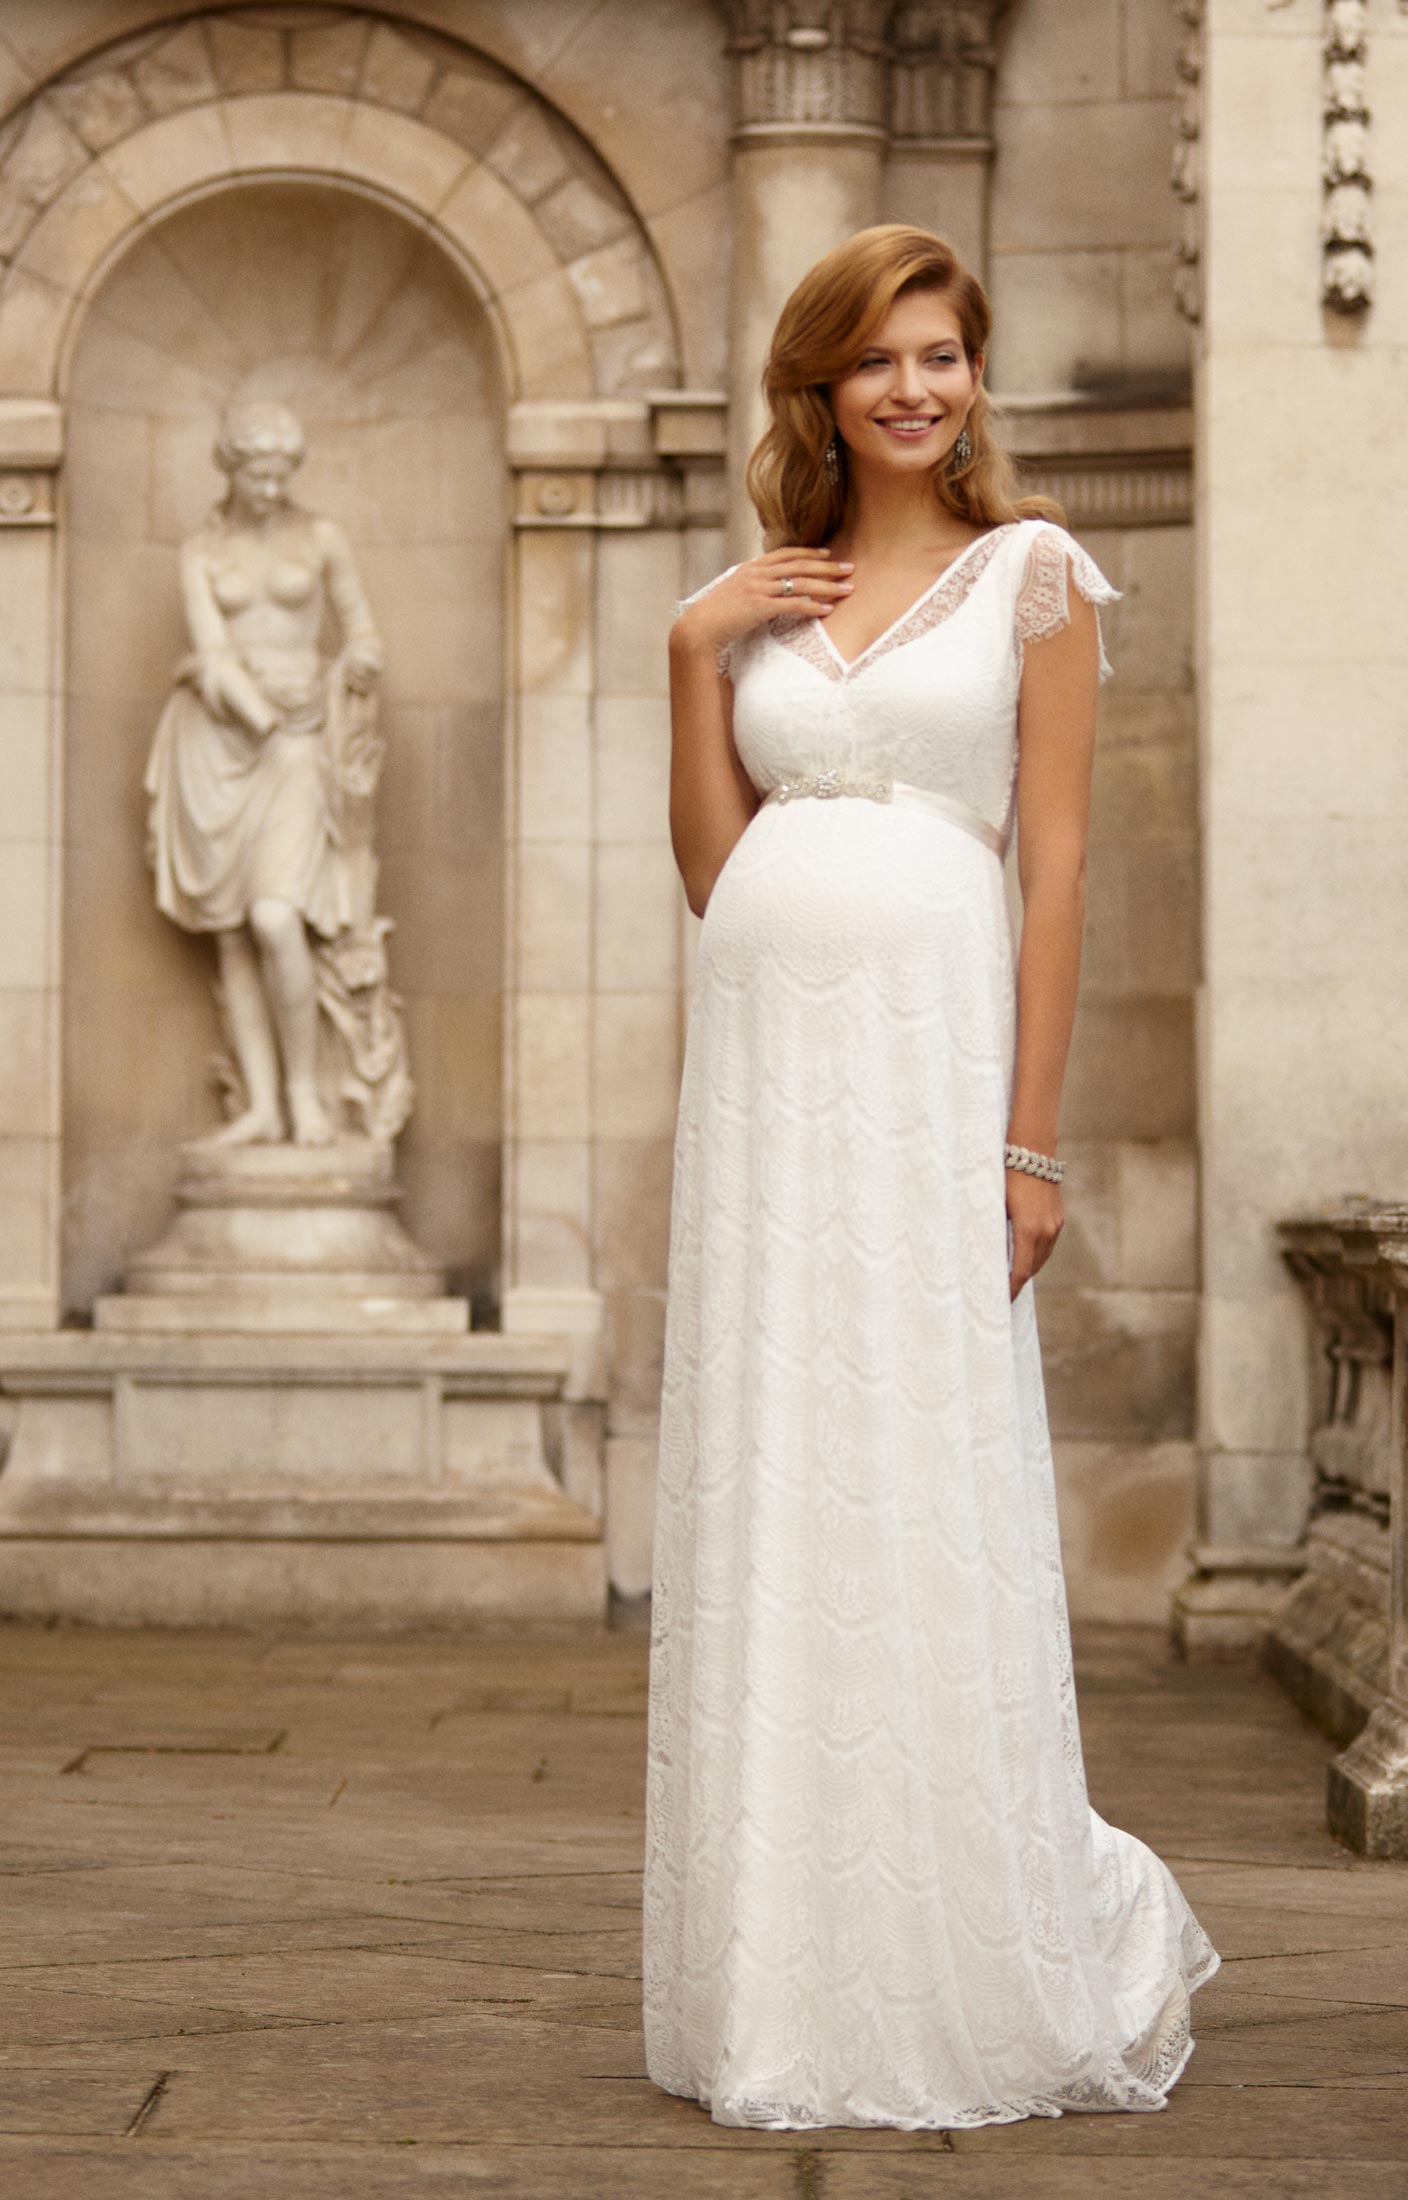 Maternity wedding dresses sophisticated and chic carey for Wedding dress to hide pregnancy